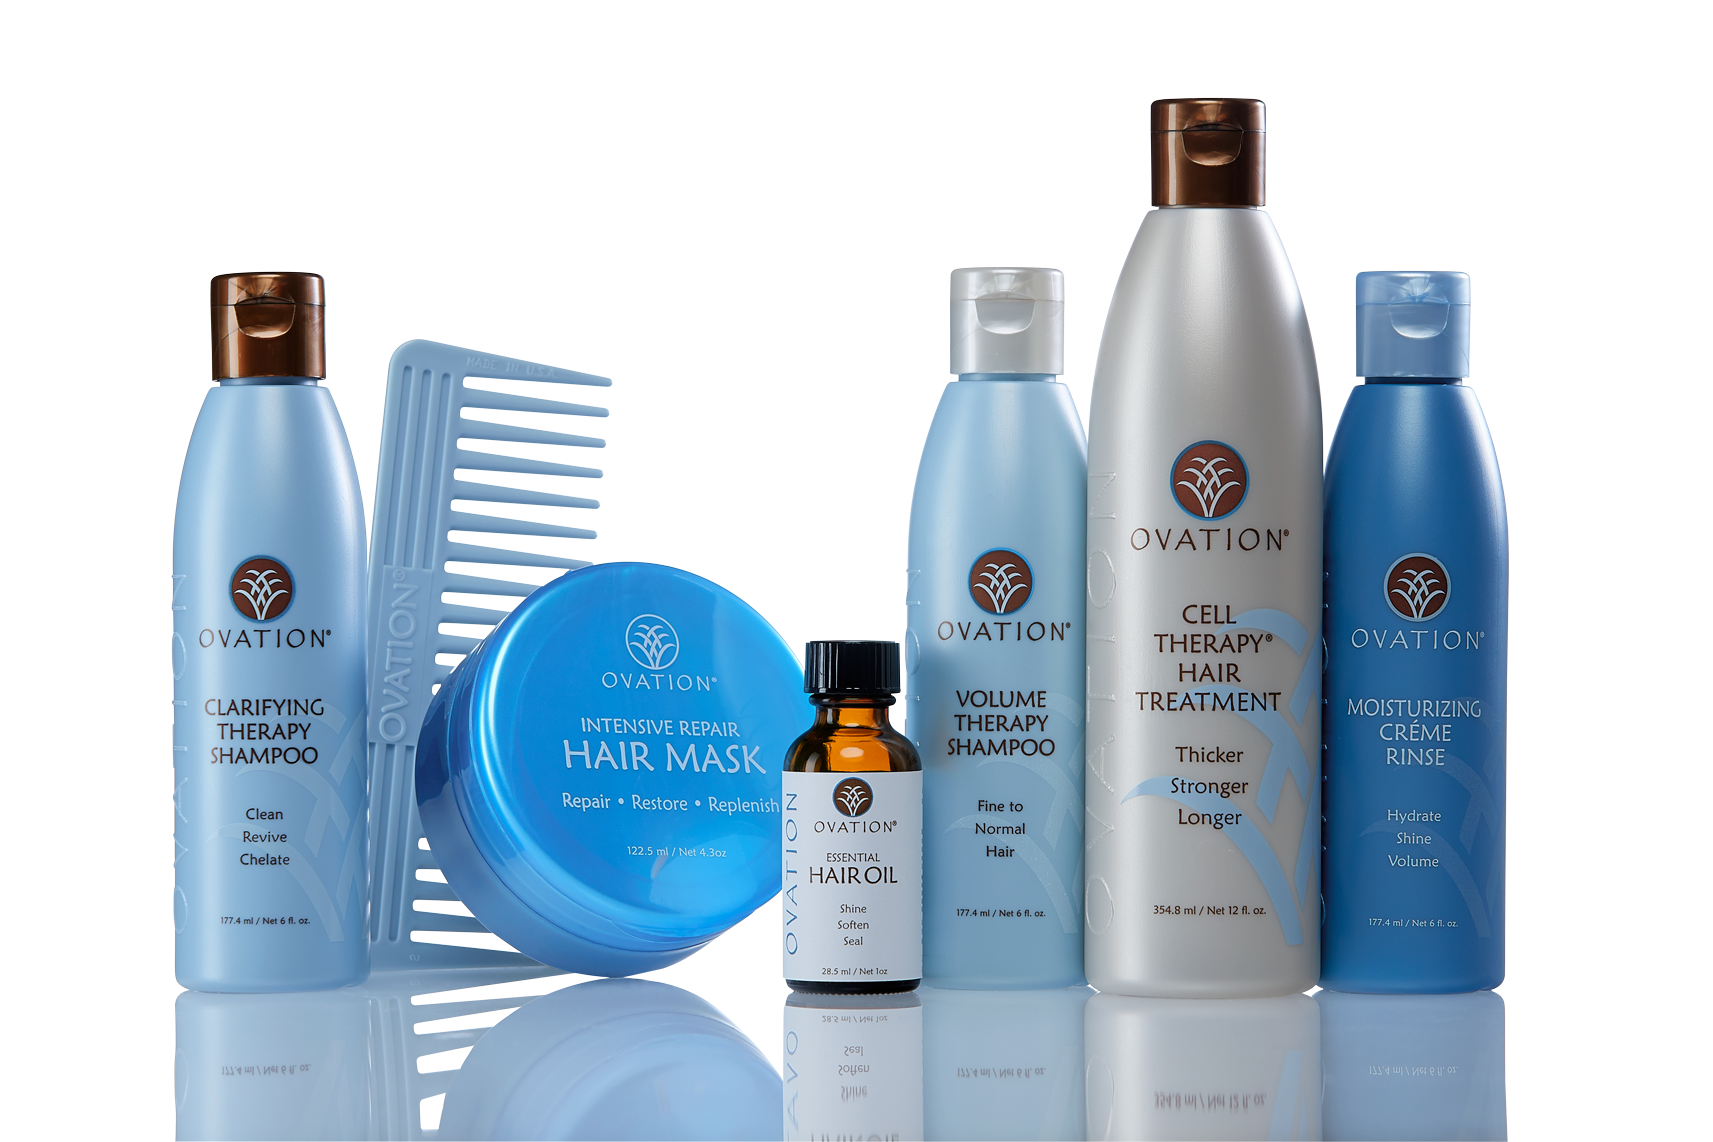 Ovation Cell Therapy Radio Promo Code December Cell Therapy of 12 Oz of Ovation. Choose your favourite products for a friendly prices. Ends Get Code Get your favourites at downcfilau.gq with a fantastic reduction. 20% Off Your Order at Ovation Hair. It's all about you and what you can get for the dollar.